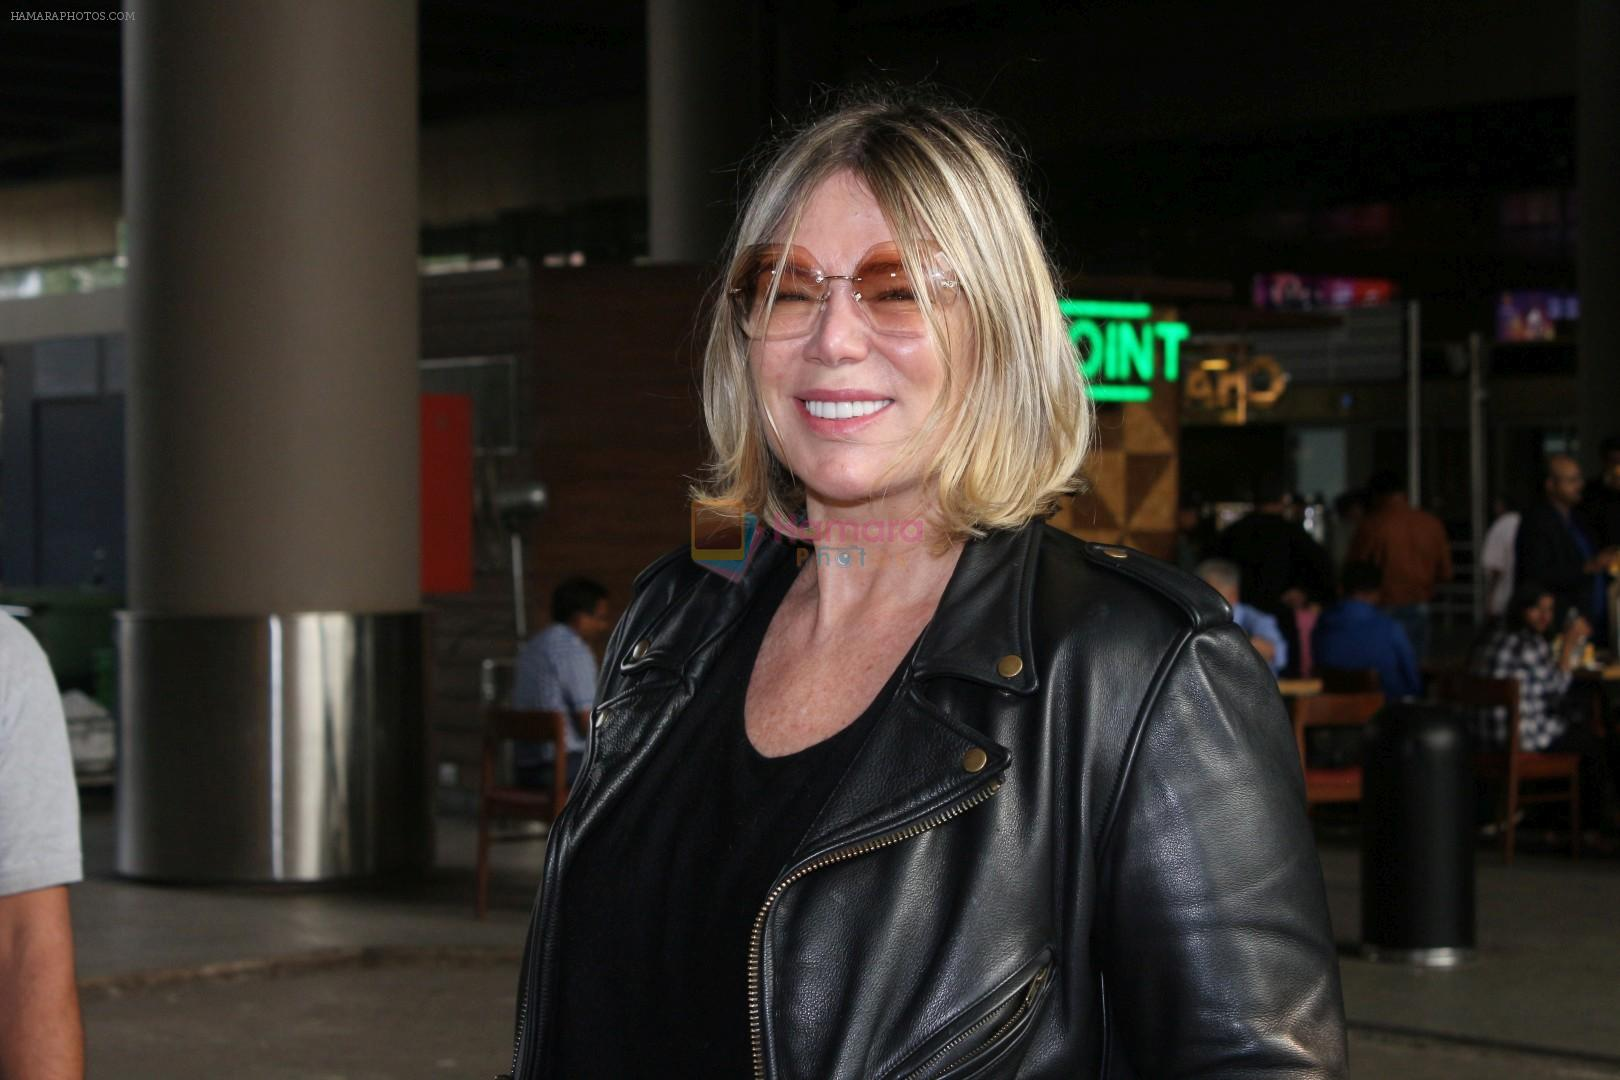 Mia Michaels Spotted At Airport on 8th Dec 2017